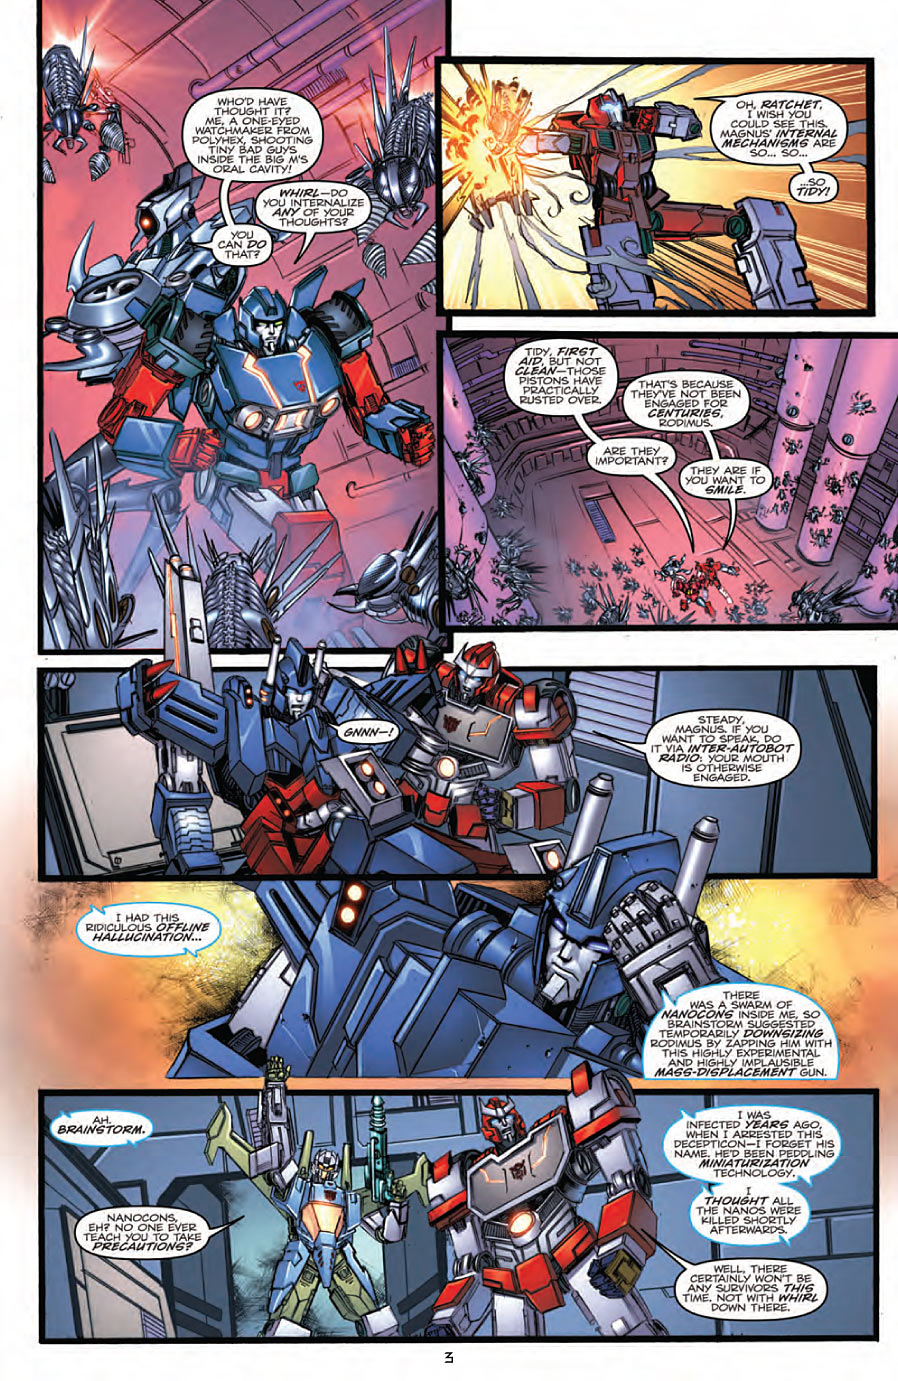 transformers-comics-more-than-meets-the-eye-annual-2012-page-3 Transformers More Than Meets the Eye Annual 2012